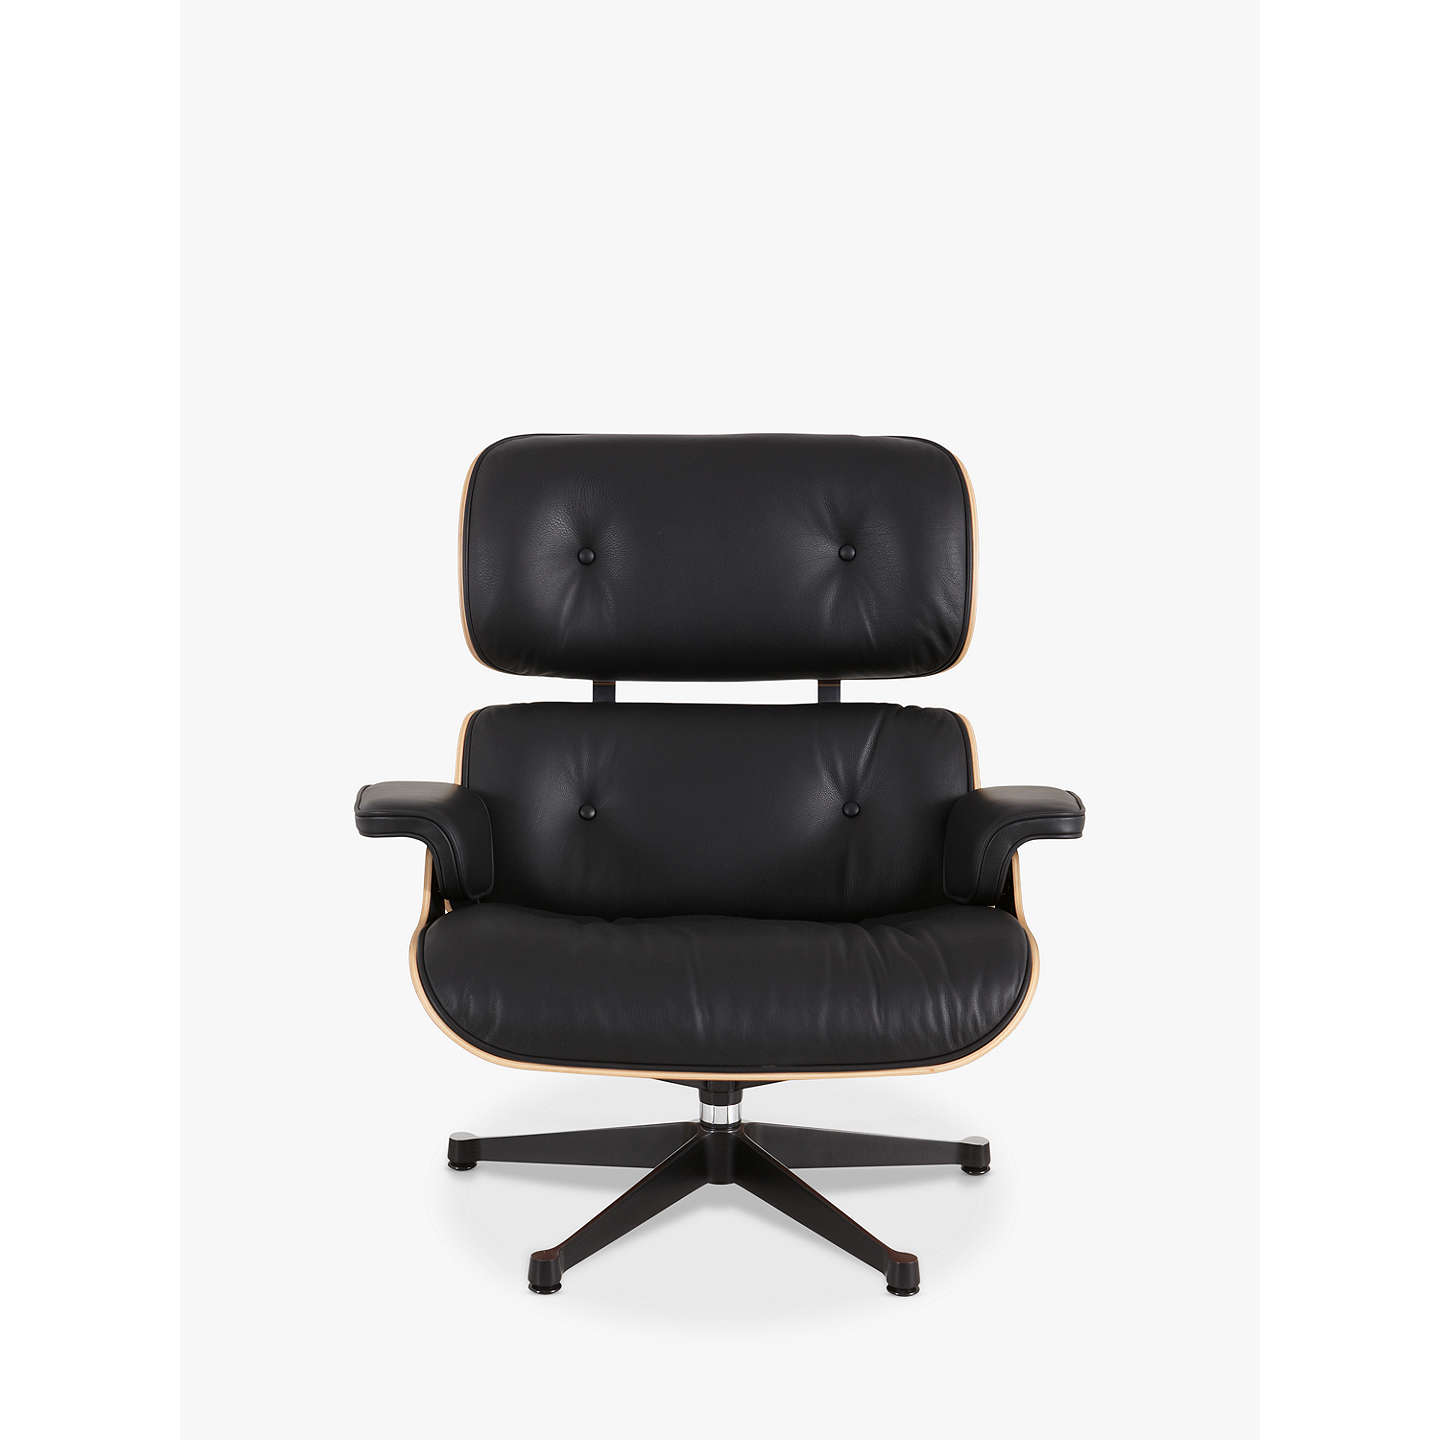 Vitra eames lounge armchair at john lewis for Vitra lounge chair nachbau